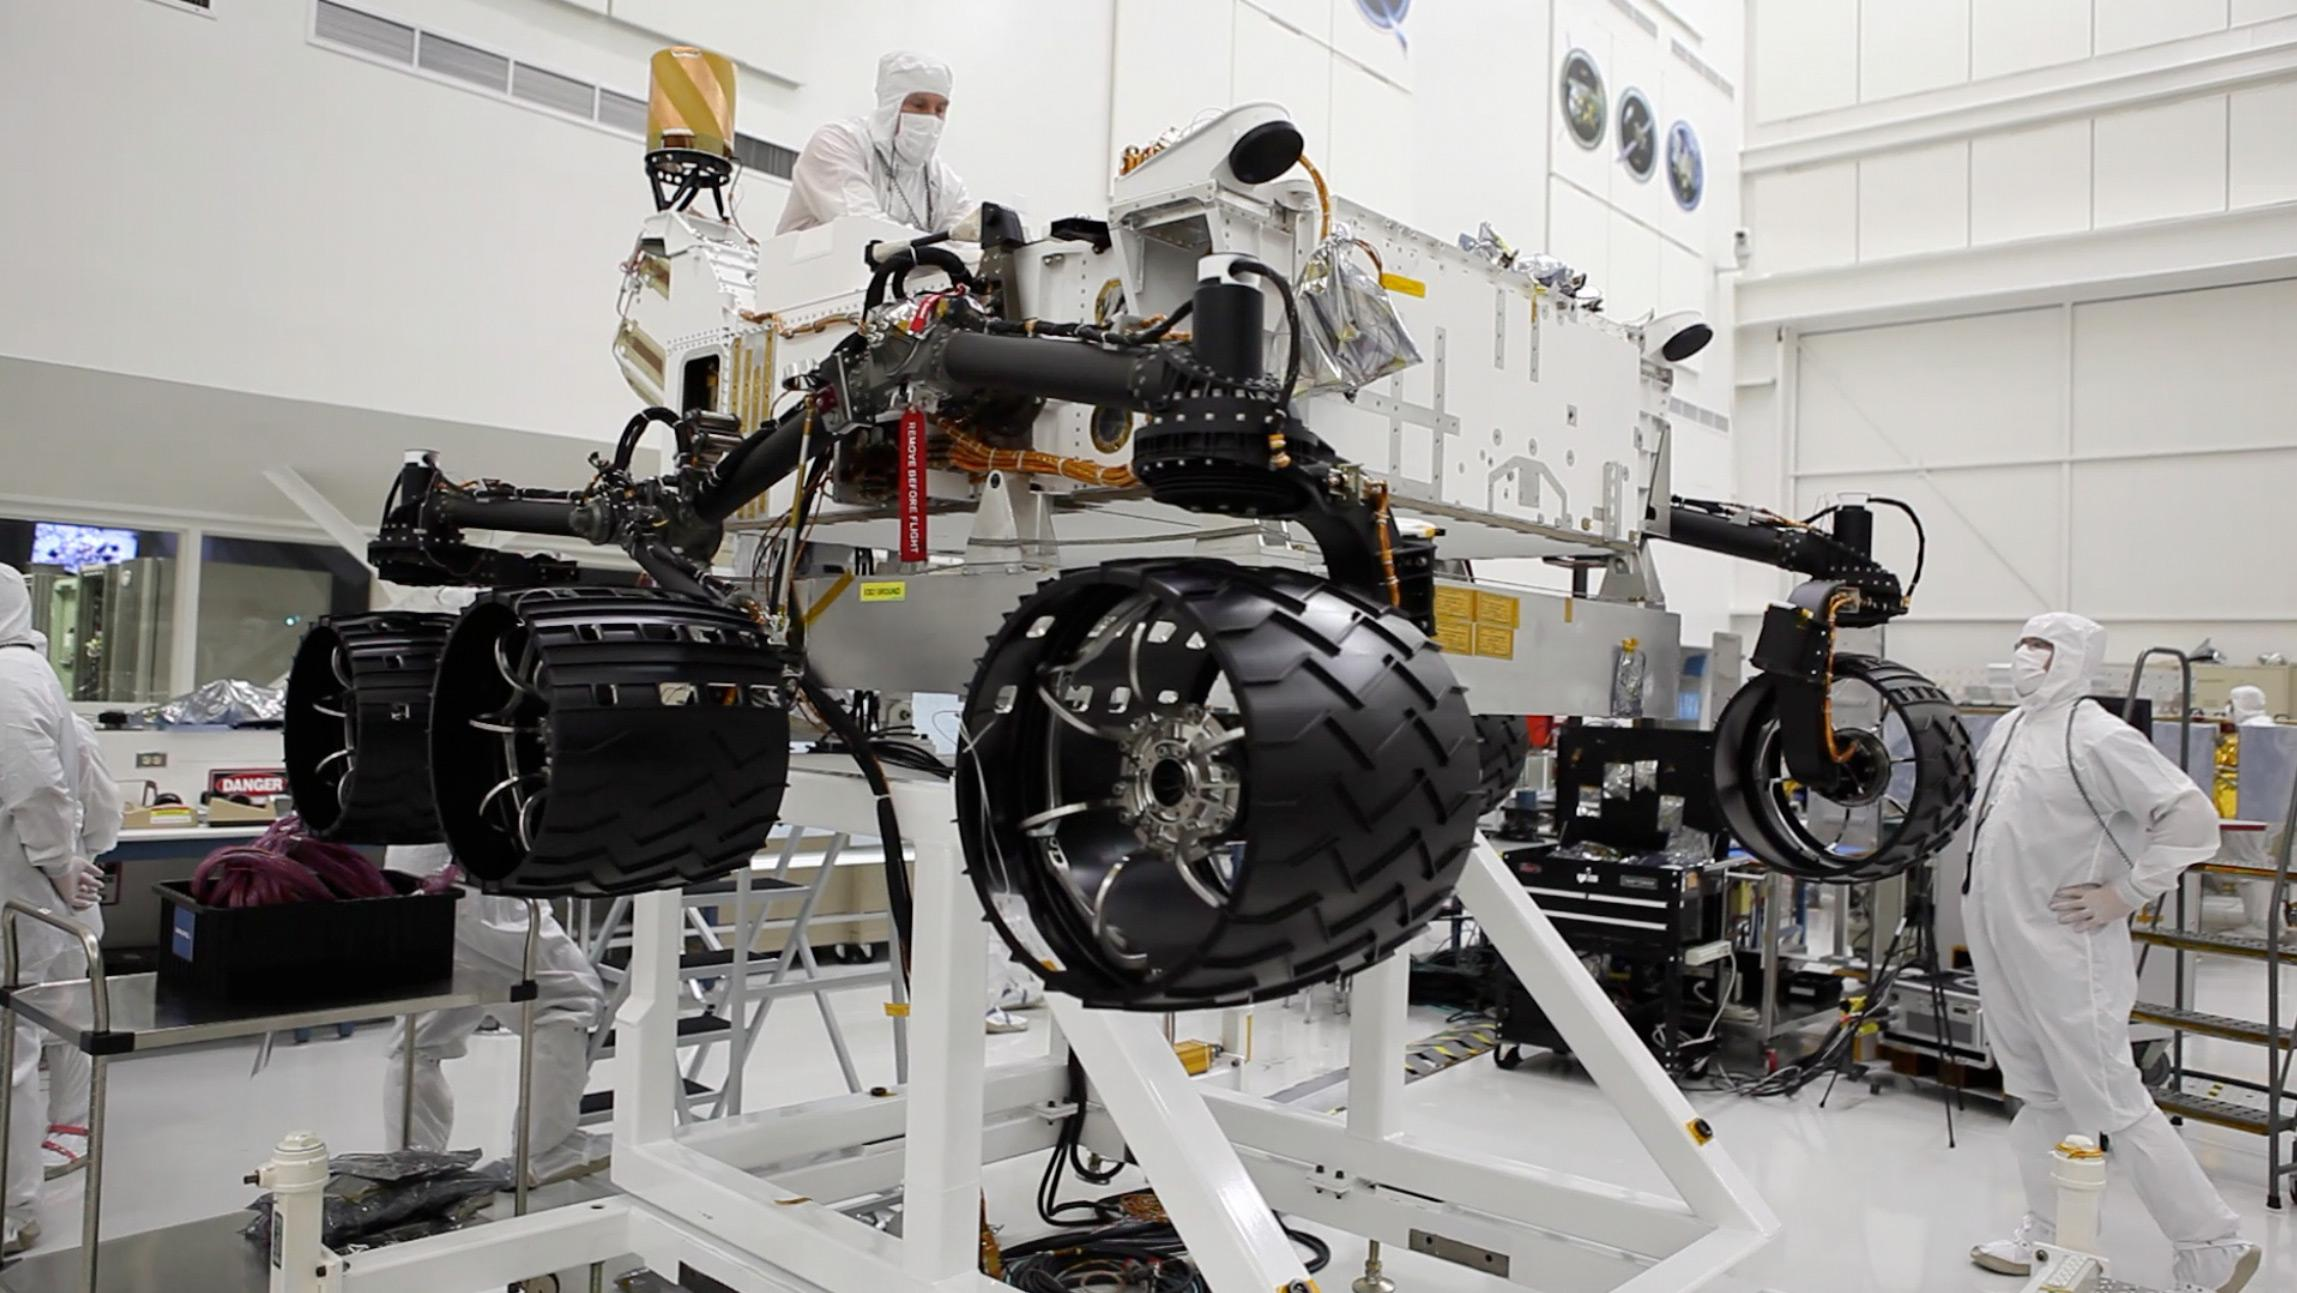 NASA - Watch NASA's Next Mars Rover Being Built Via Live 'Curiosity Cam'